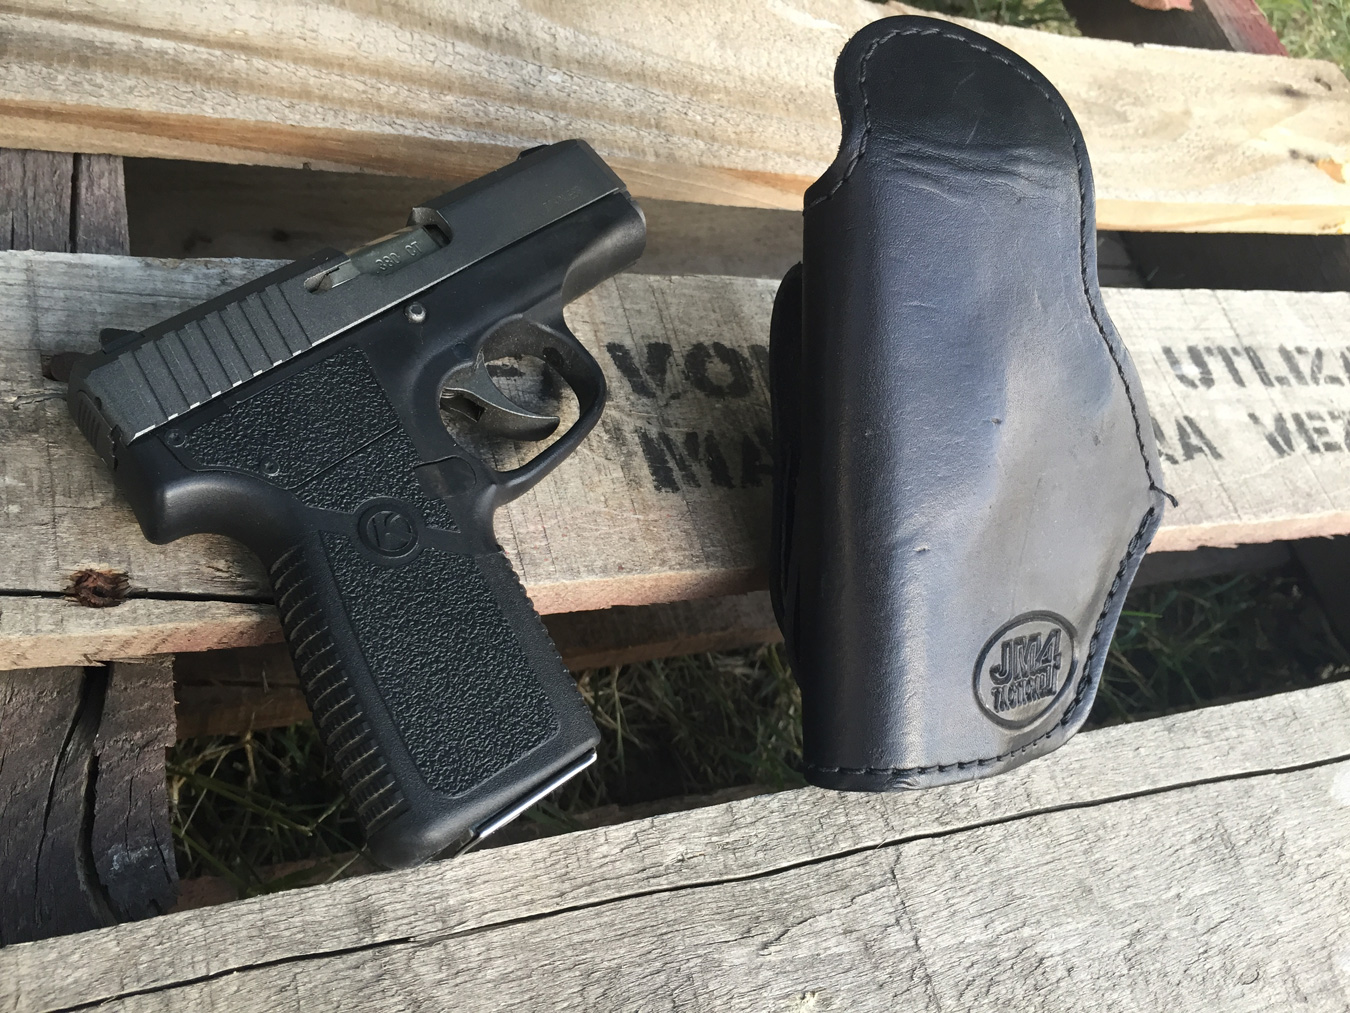 Kahr 380 pistol with JM4 leather Quick Click & Carry holster